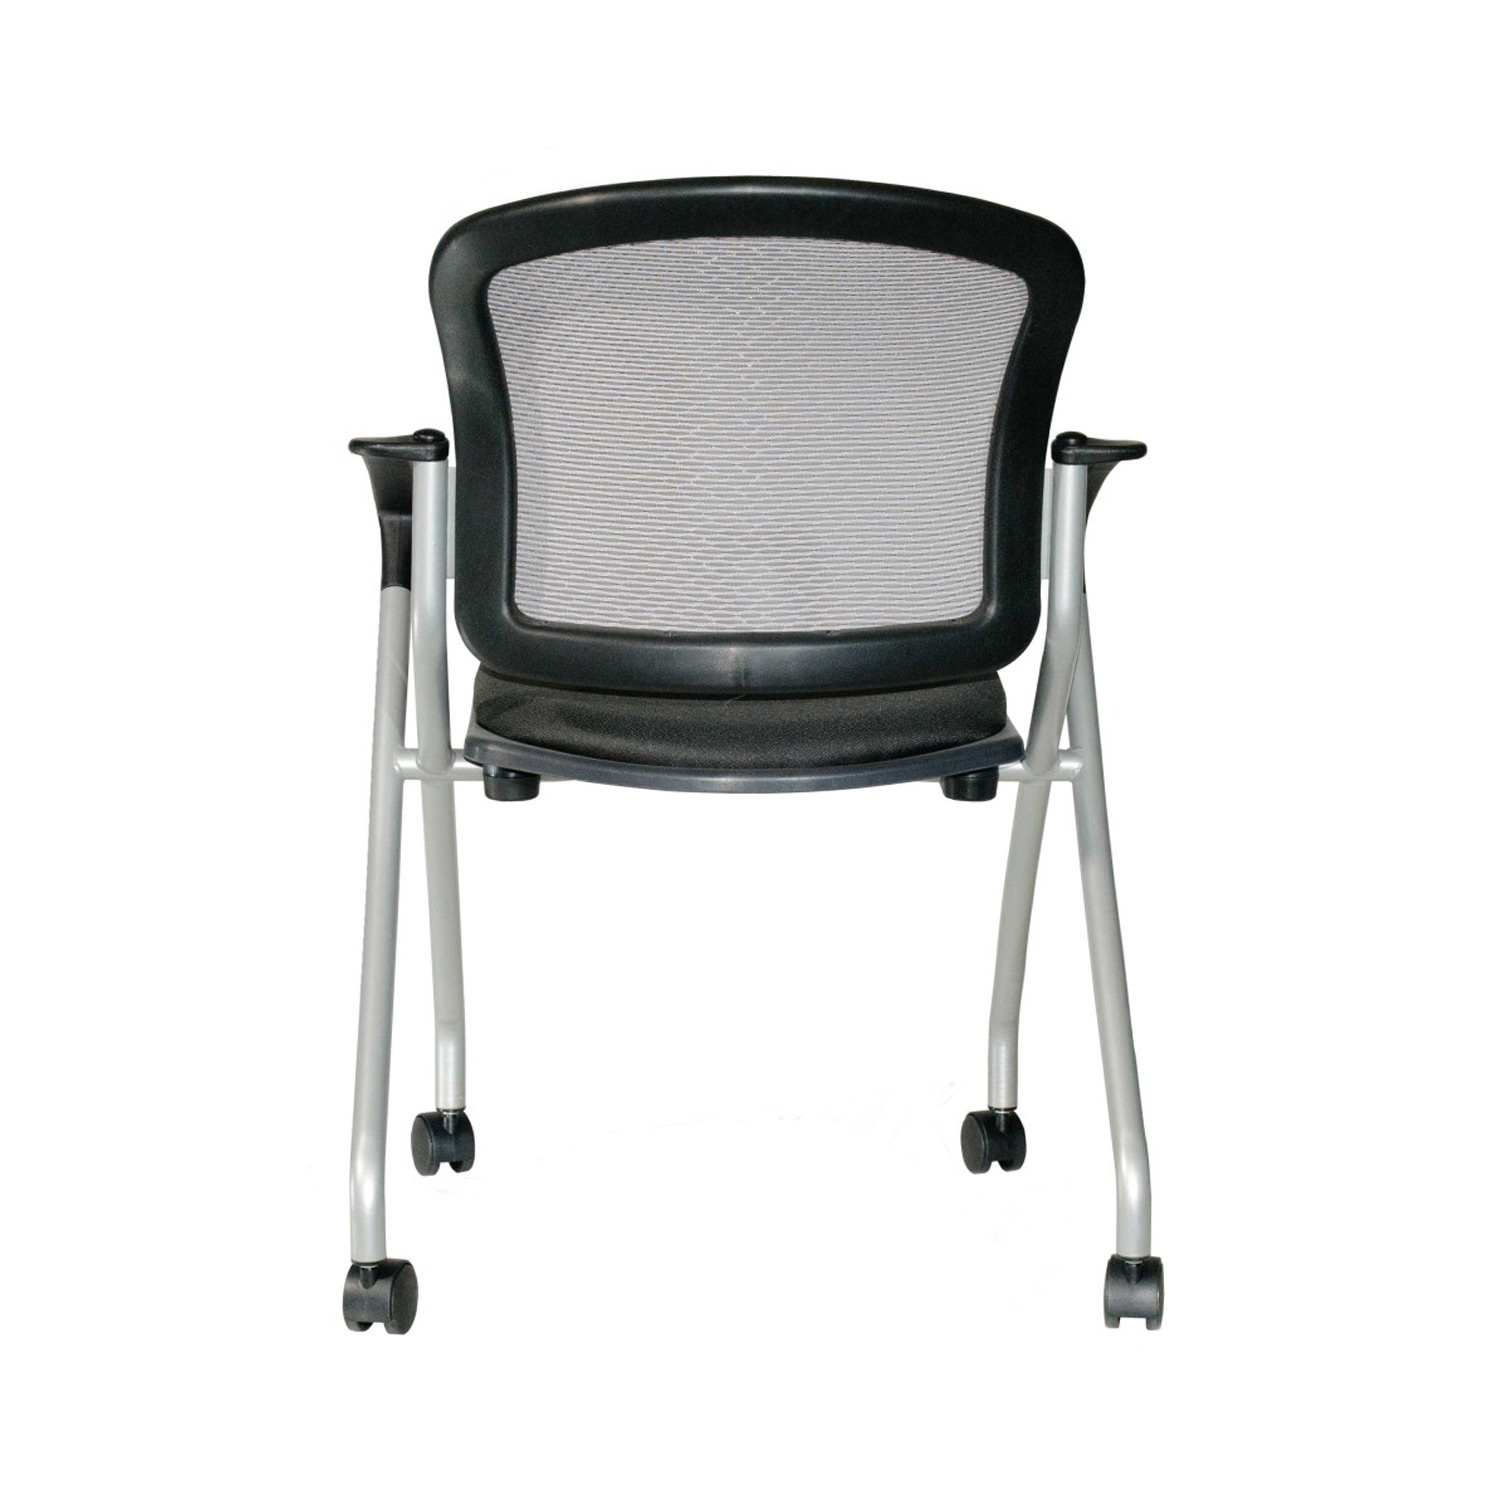 Folding fice Chair Guest Chairs fice furniture chairs